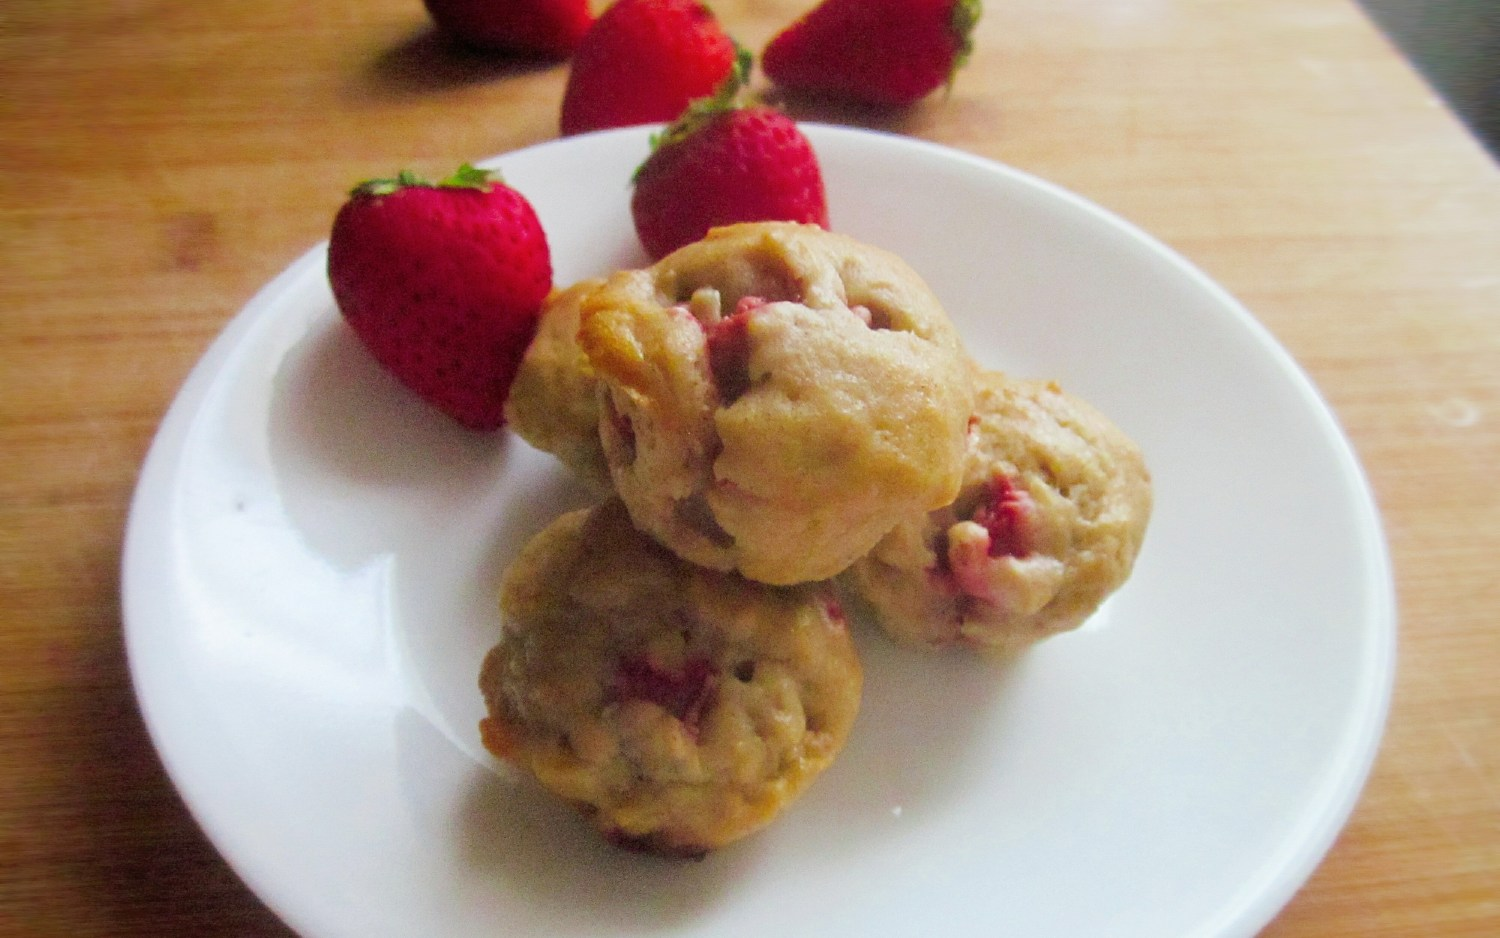 Strawberry-Banana Mini Breakfast Muffins the Entire Family Will Enjoy